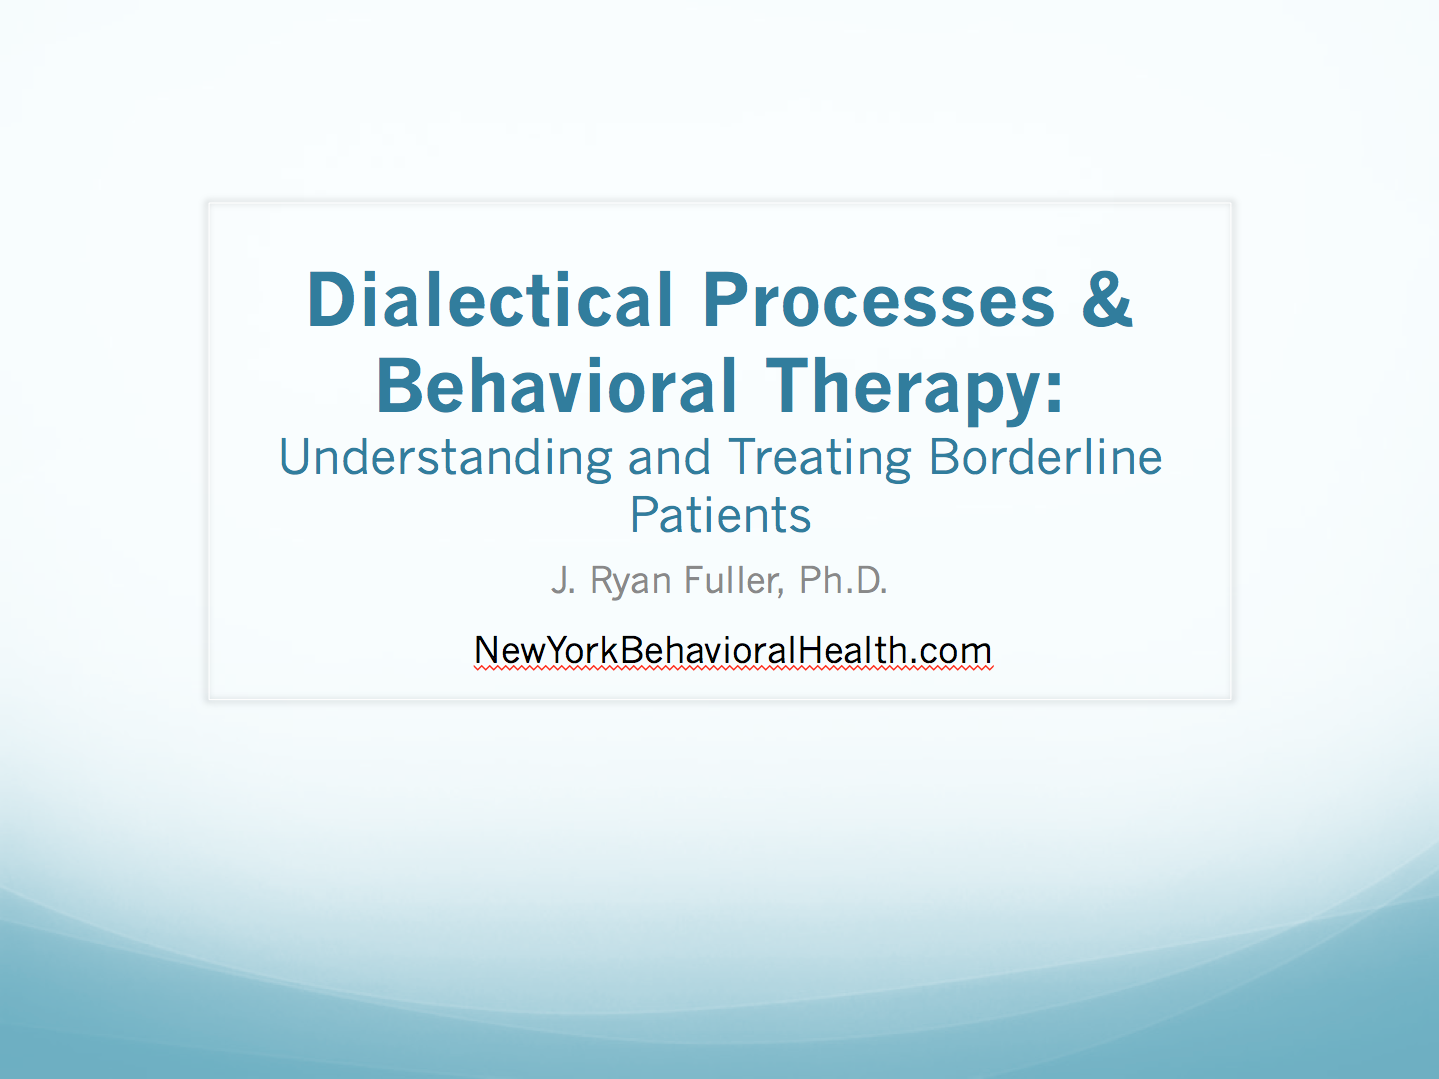 a therapeutic approach to borderline personality disorder Borderline personality disorder treatments can include medications, psychotherapy, and hospitalization psychotherapy is usually the preferred mode of treatment.